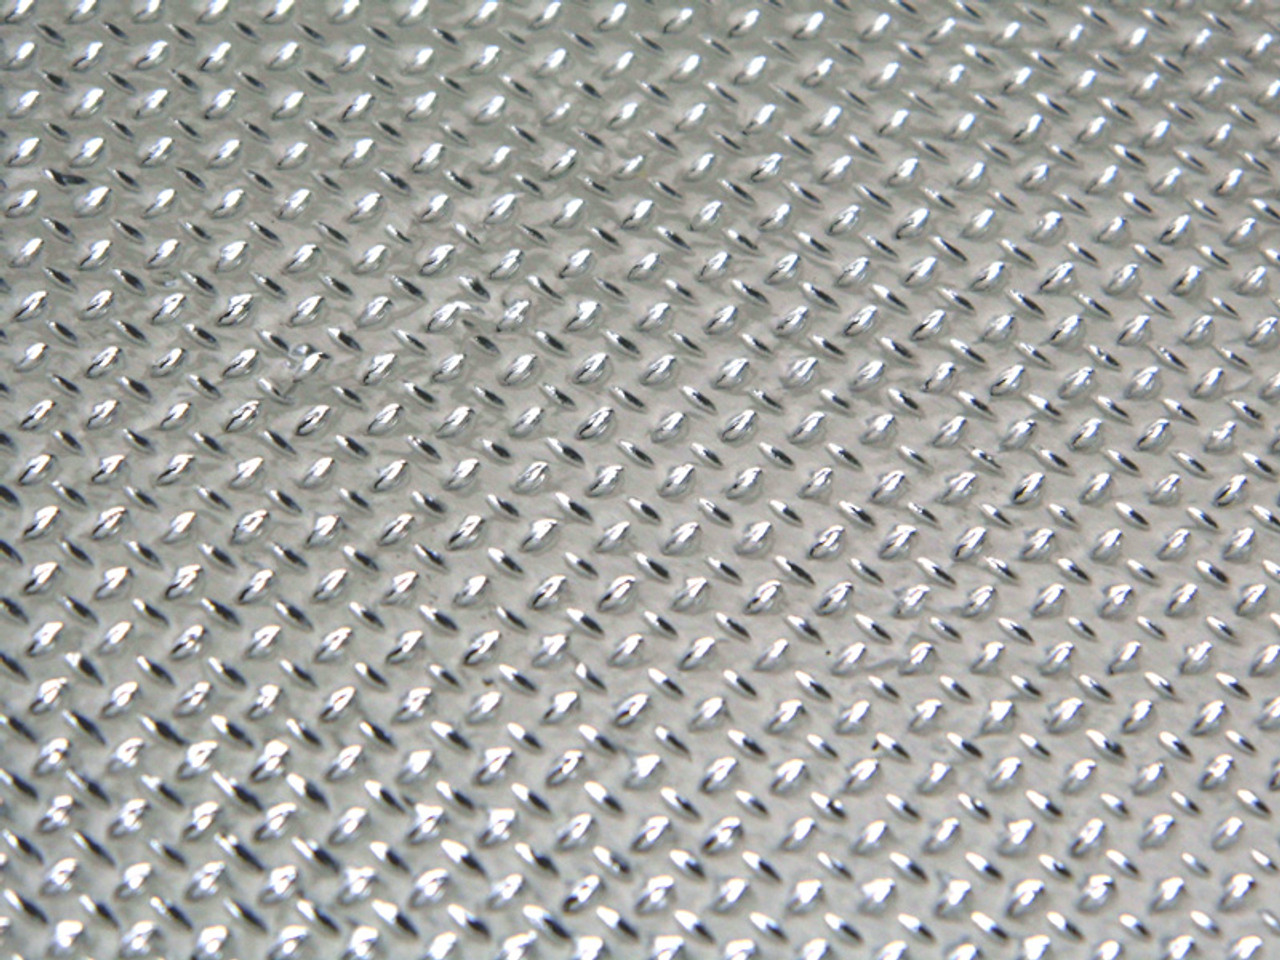 Motorcycle Heat Shield Sheet To Protect Your Fairing Fuel